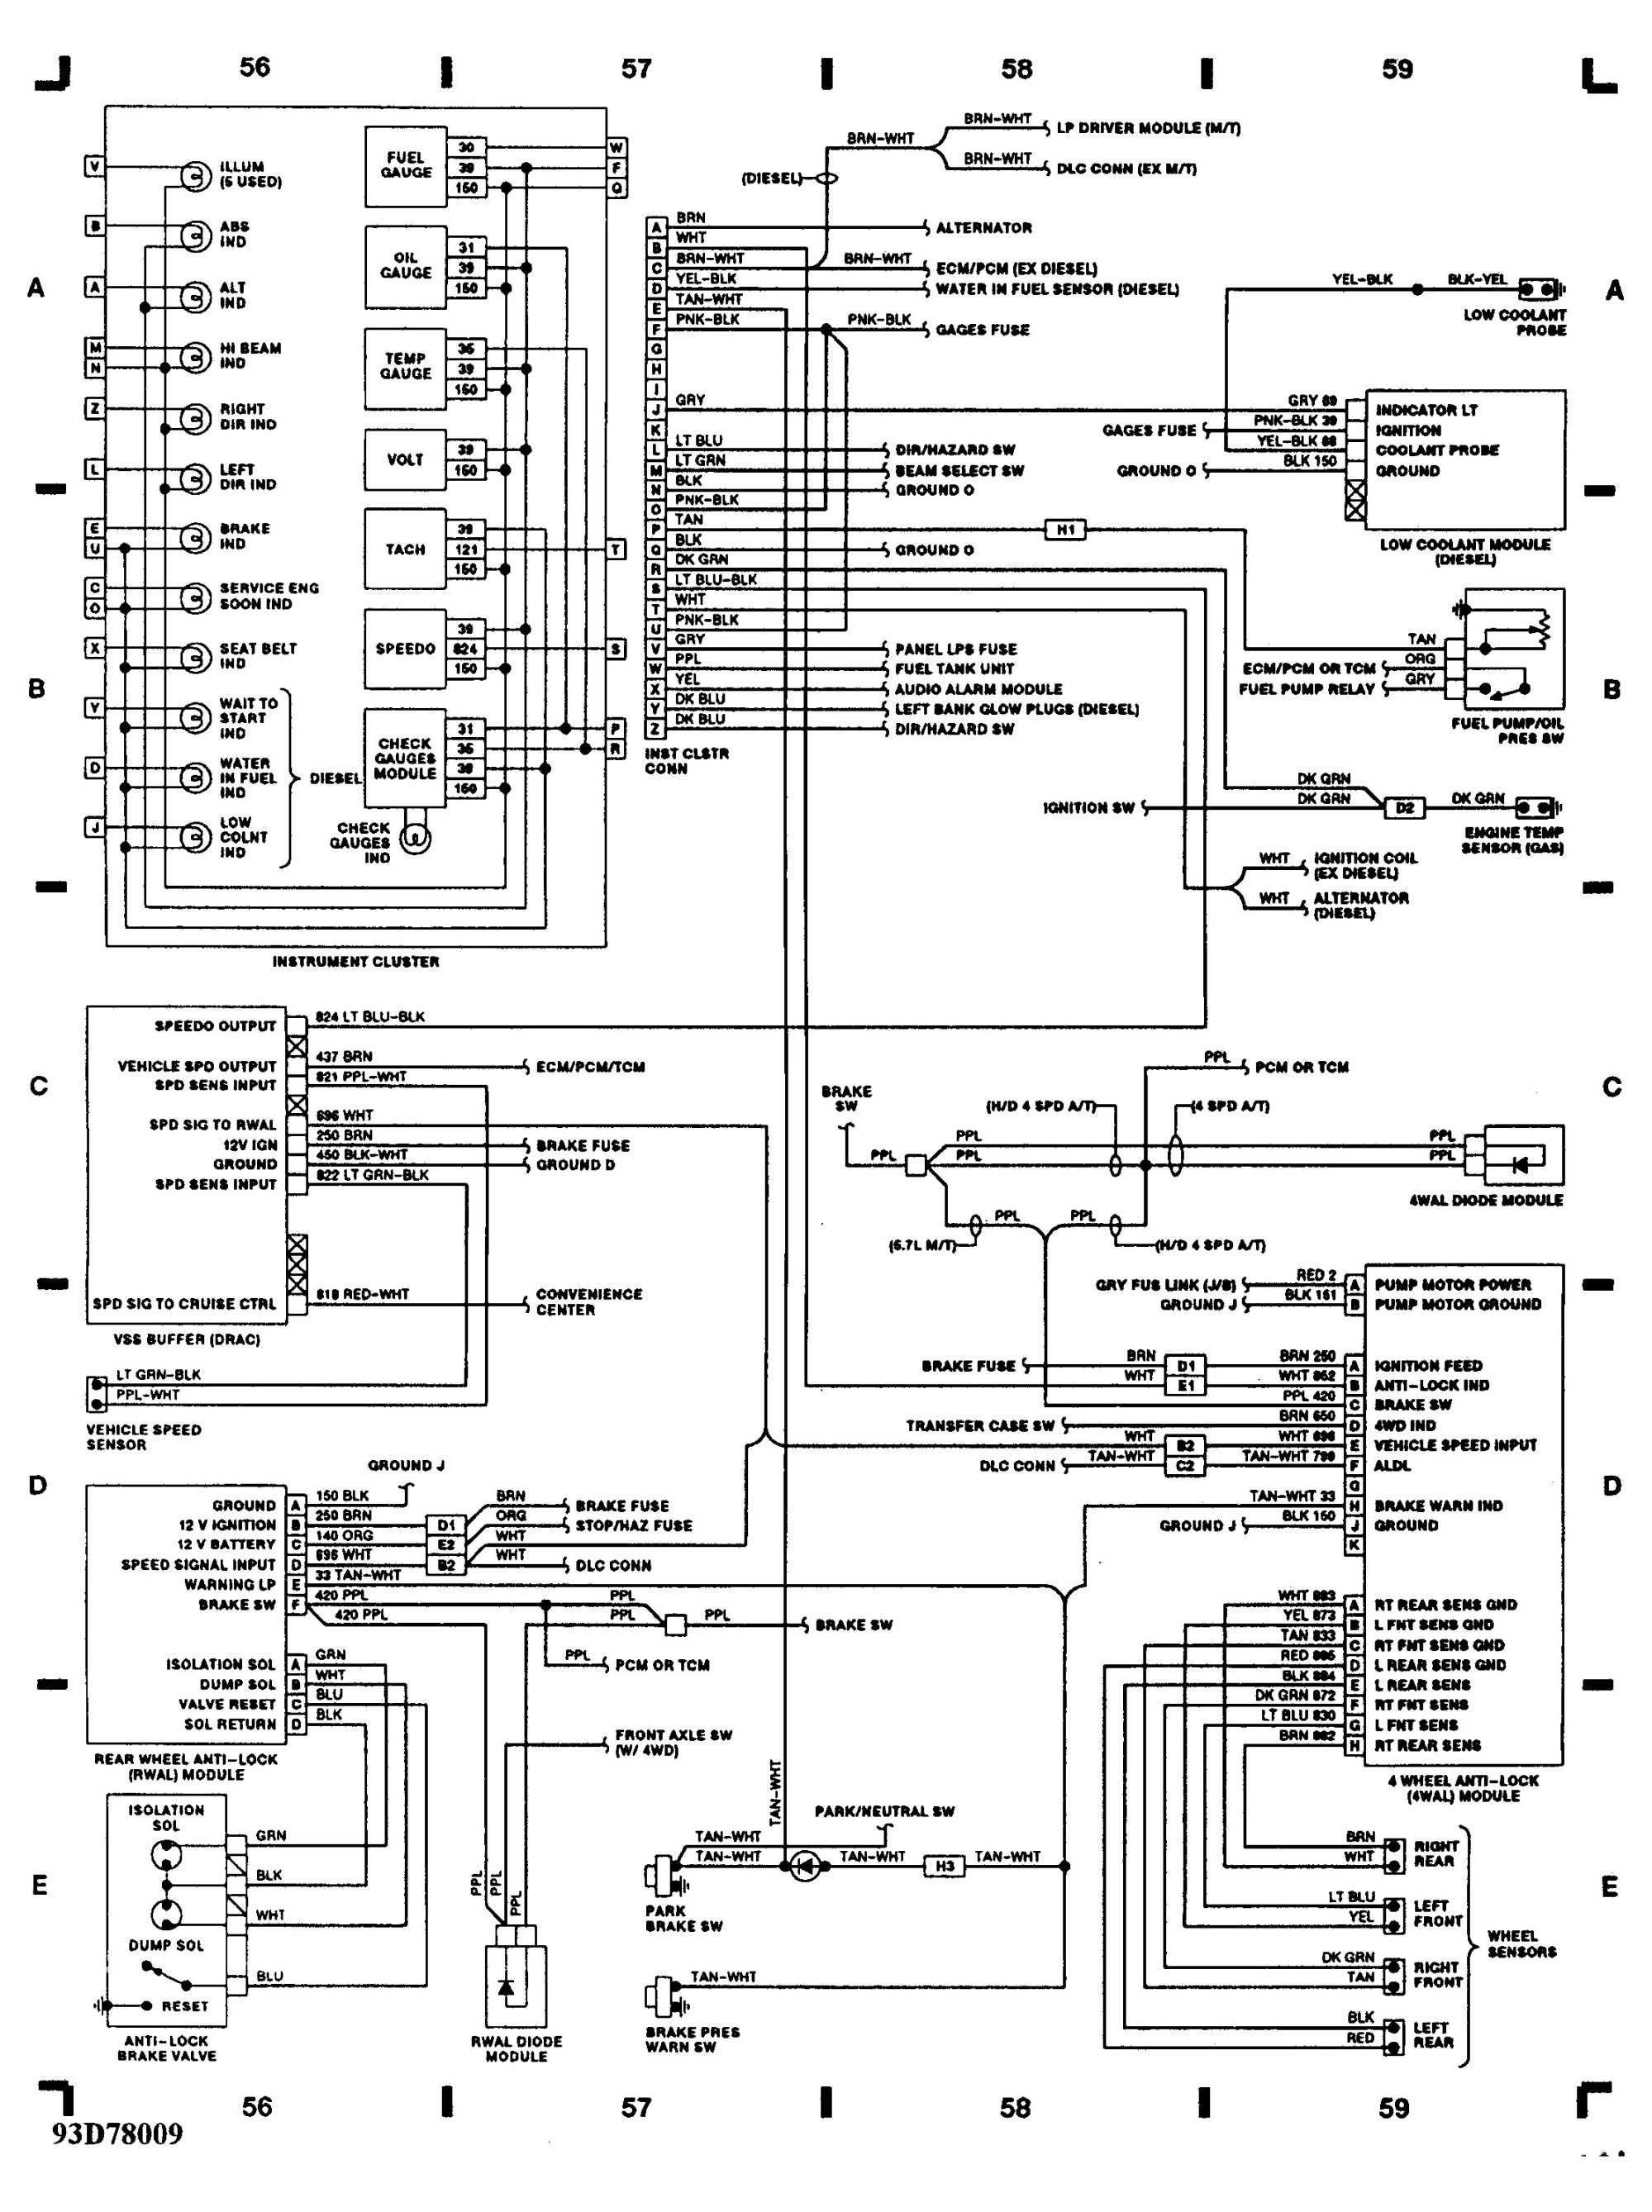 hight resolution of 97 chevy vortec engine wiring harness diagram likewise 350 vortec 97 chevy wiring harness